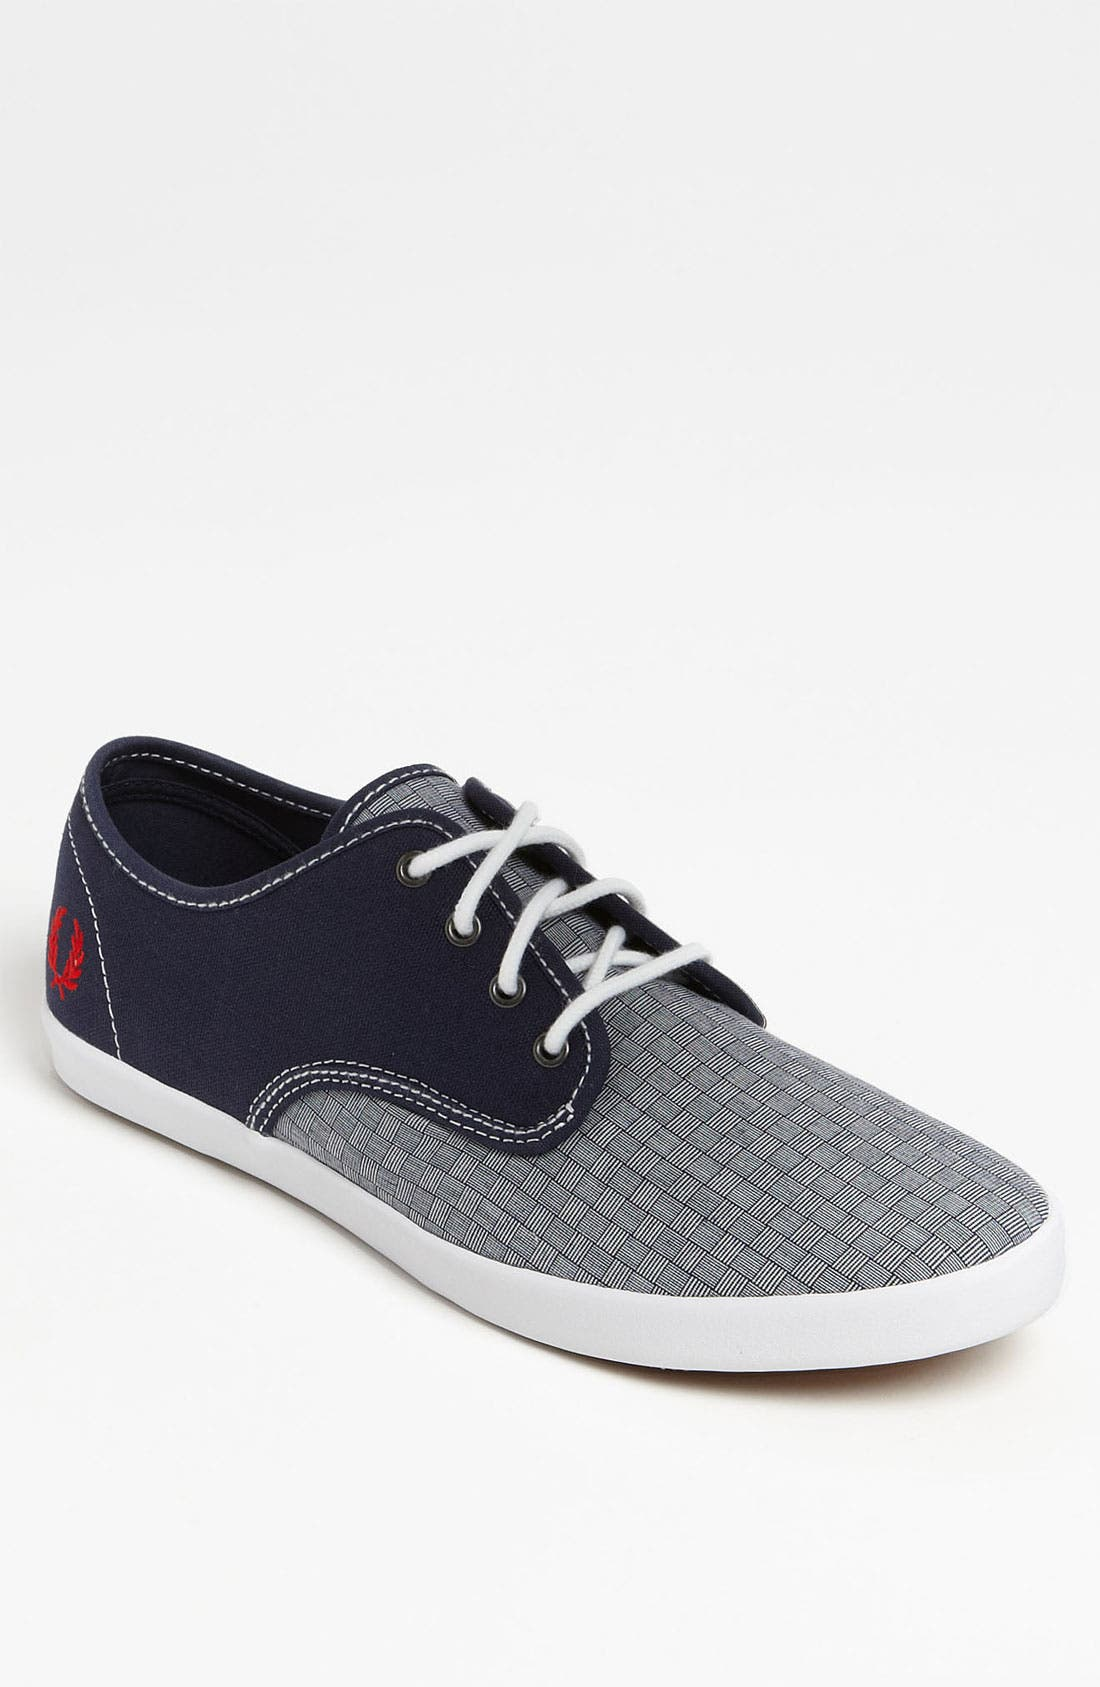 Alternate Image 1 Selected - Fred Perry 'Foxx' Sneaker